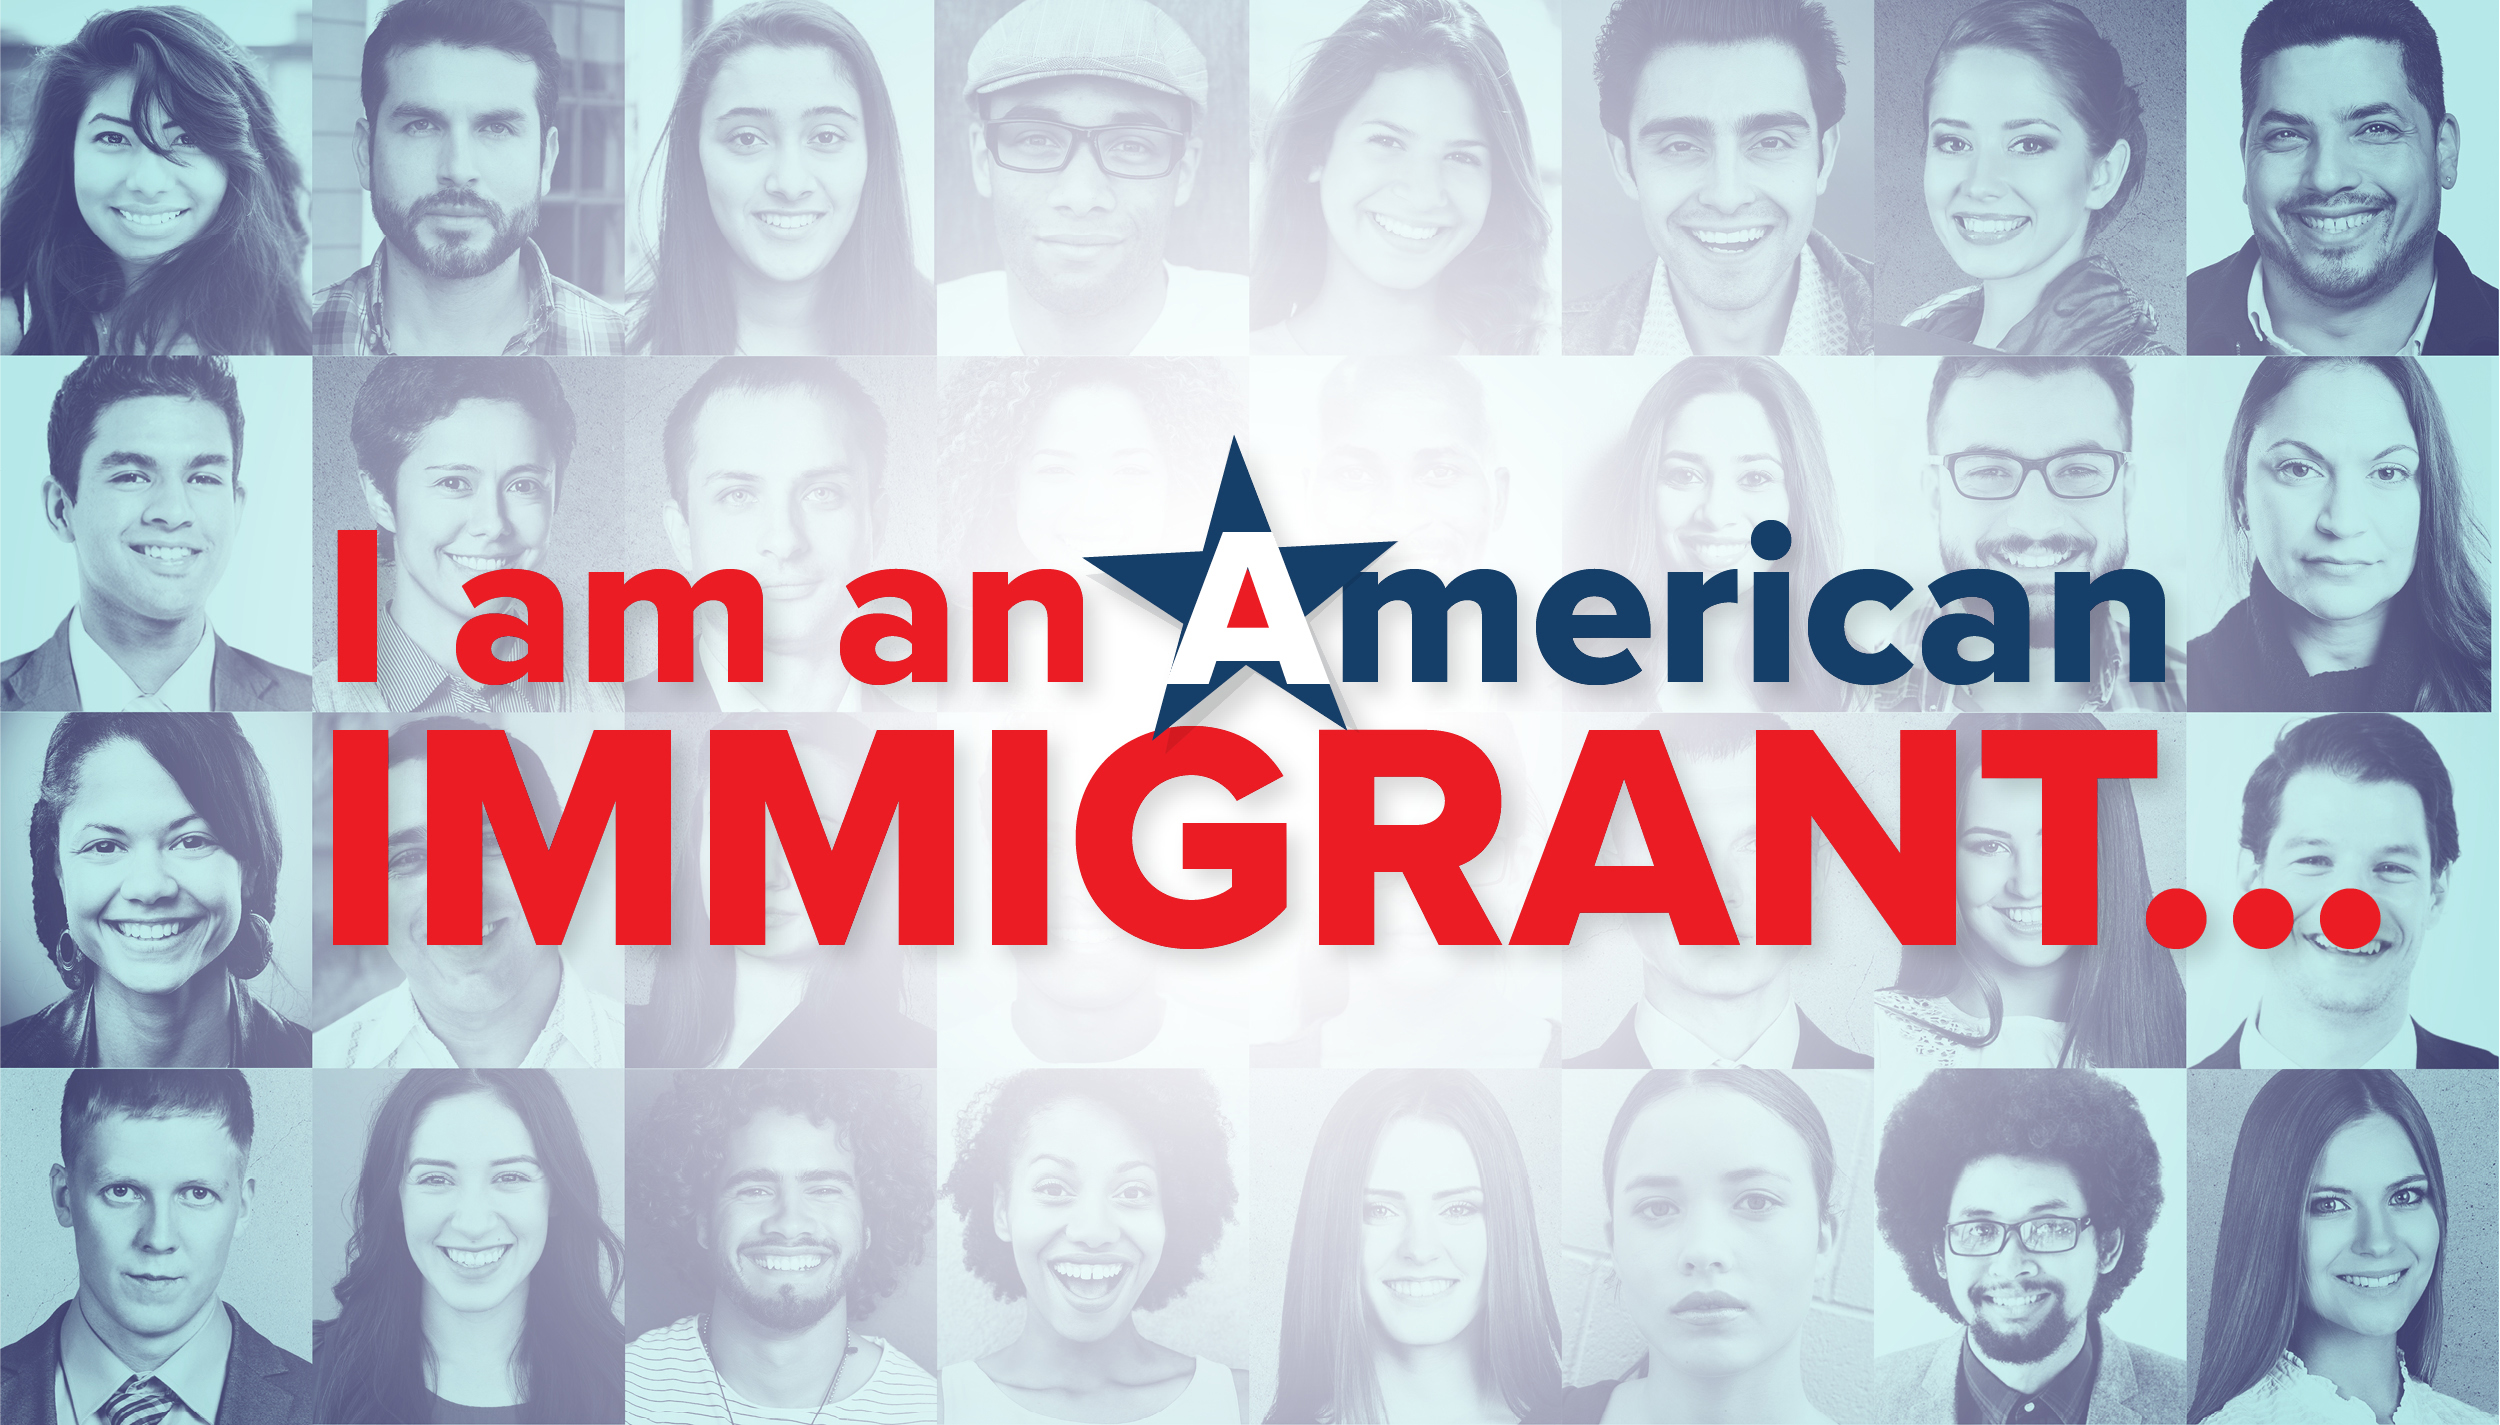 I am an American Immigrant logo